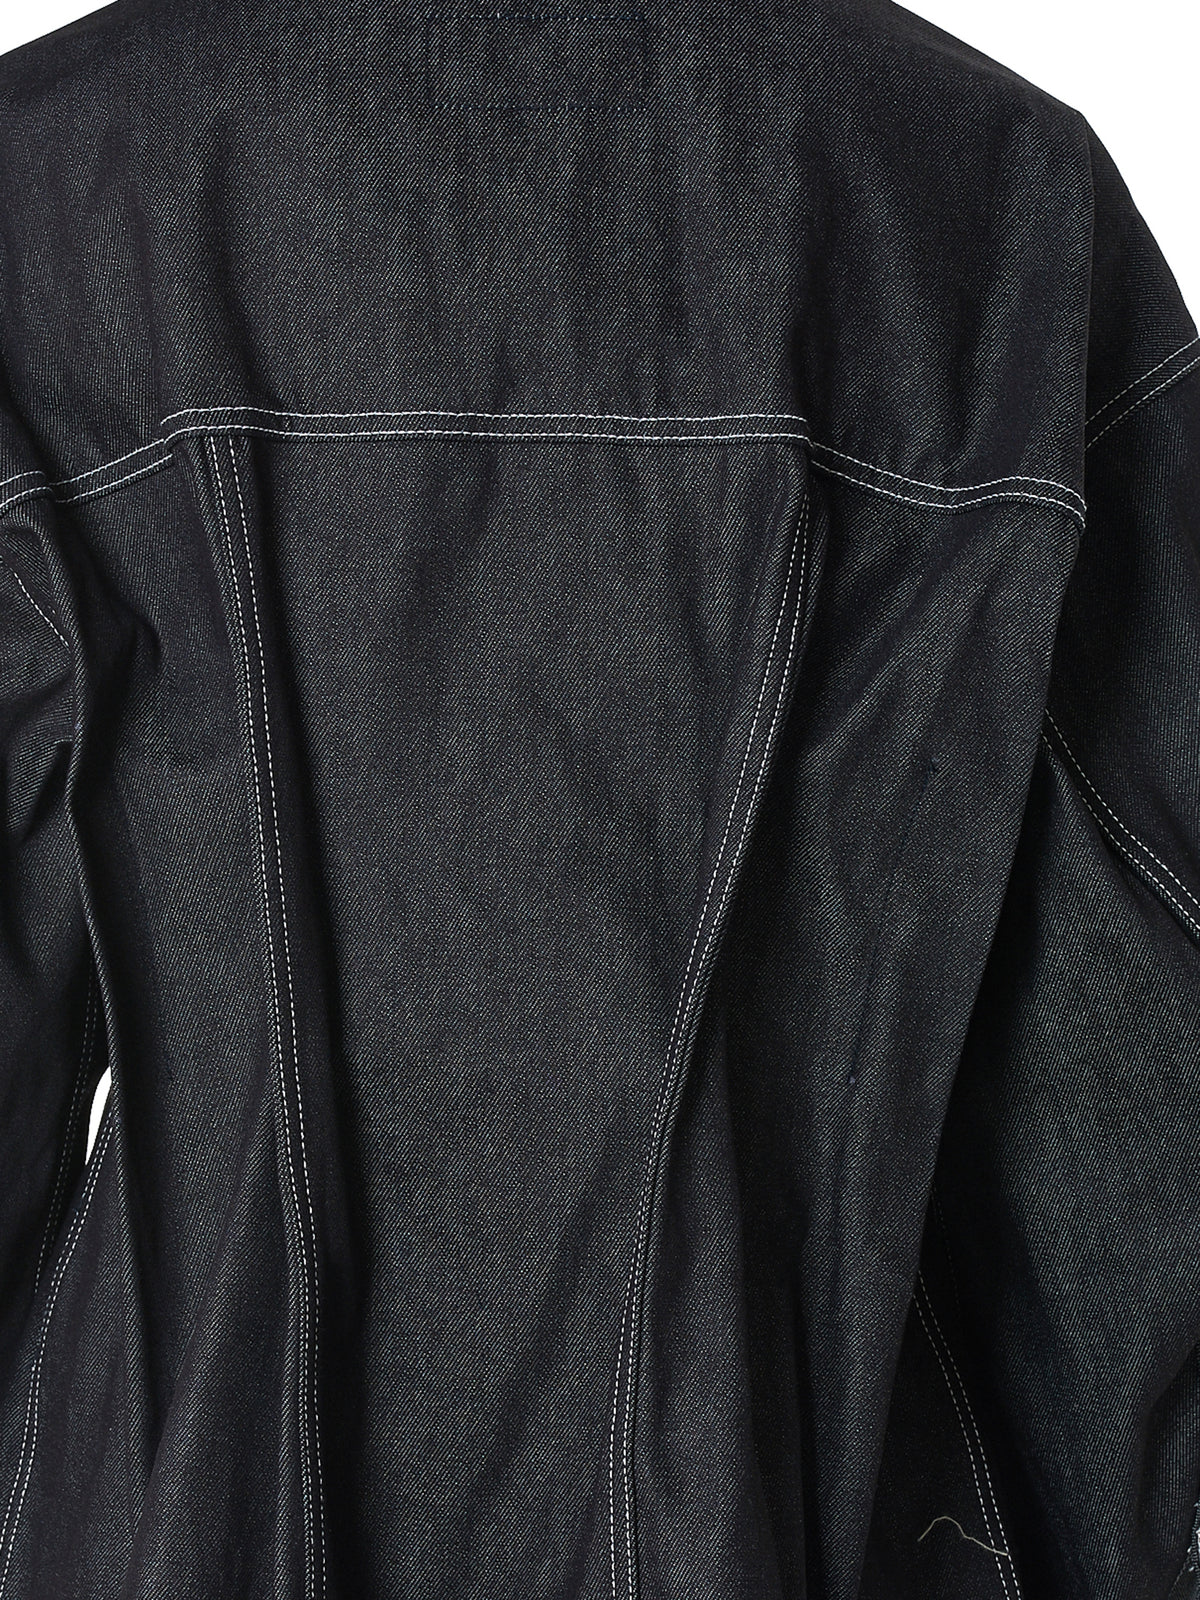 Irene Denim Jacket - Hlorenzo Detail 2